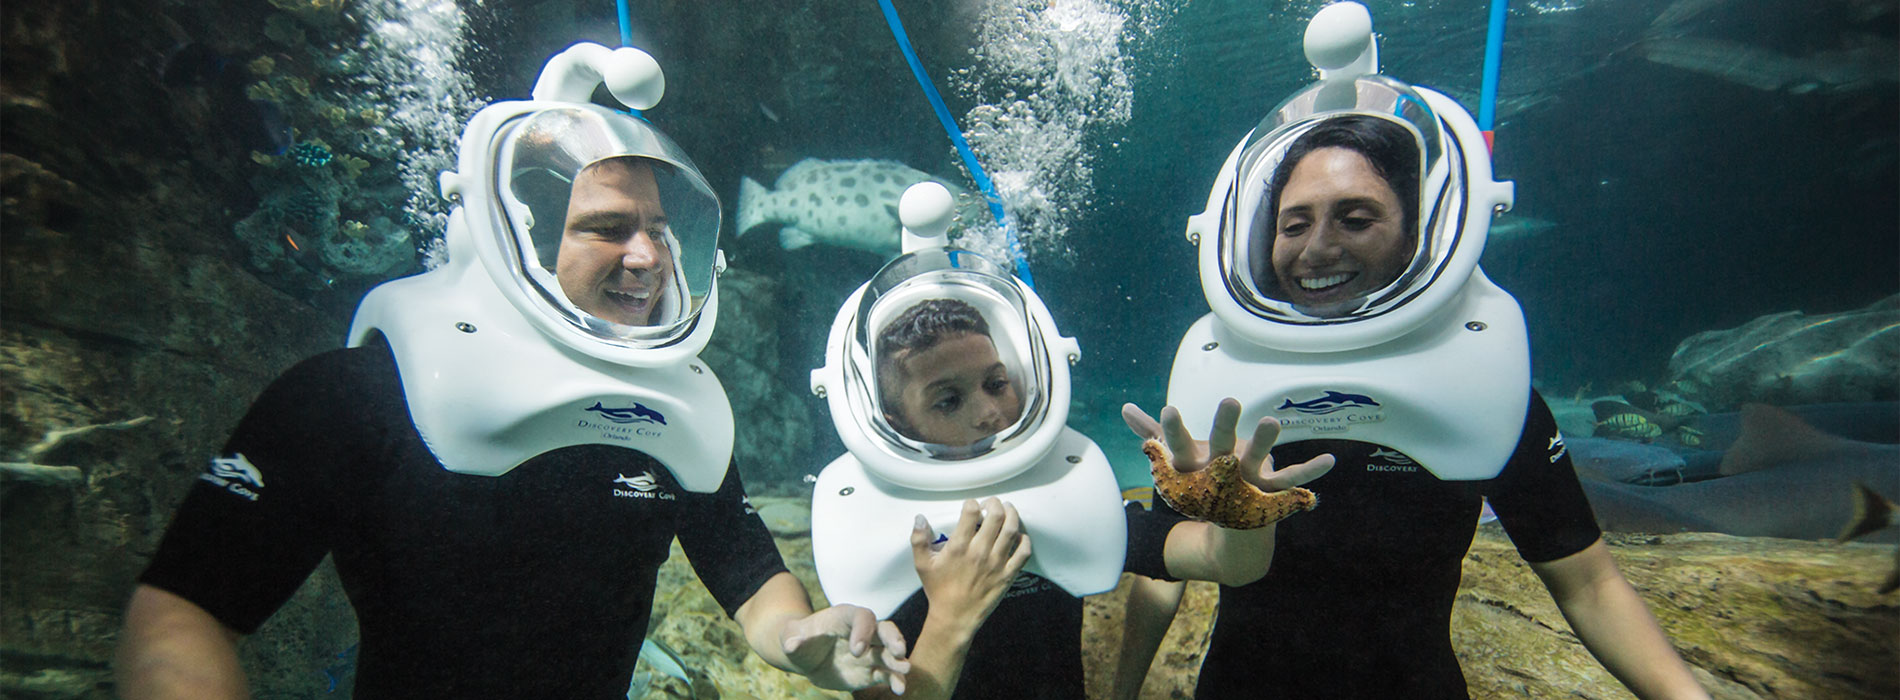 Take an underwater tour of the tropical reef habitat for thousands of tropical fish at Discovery Cove.